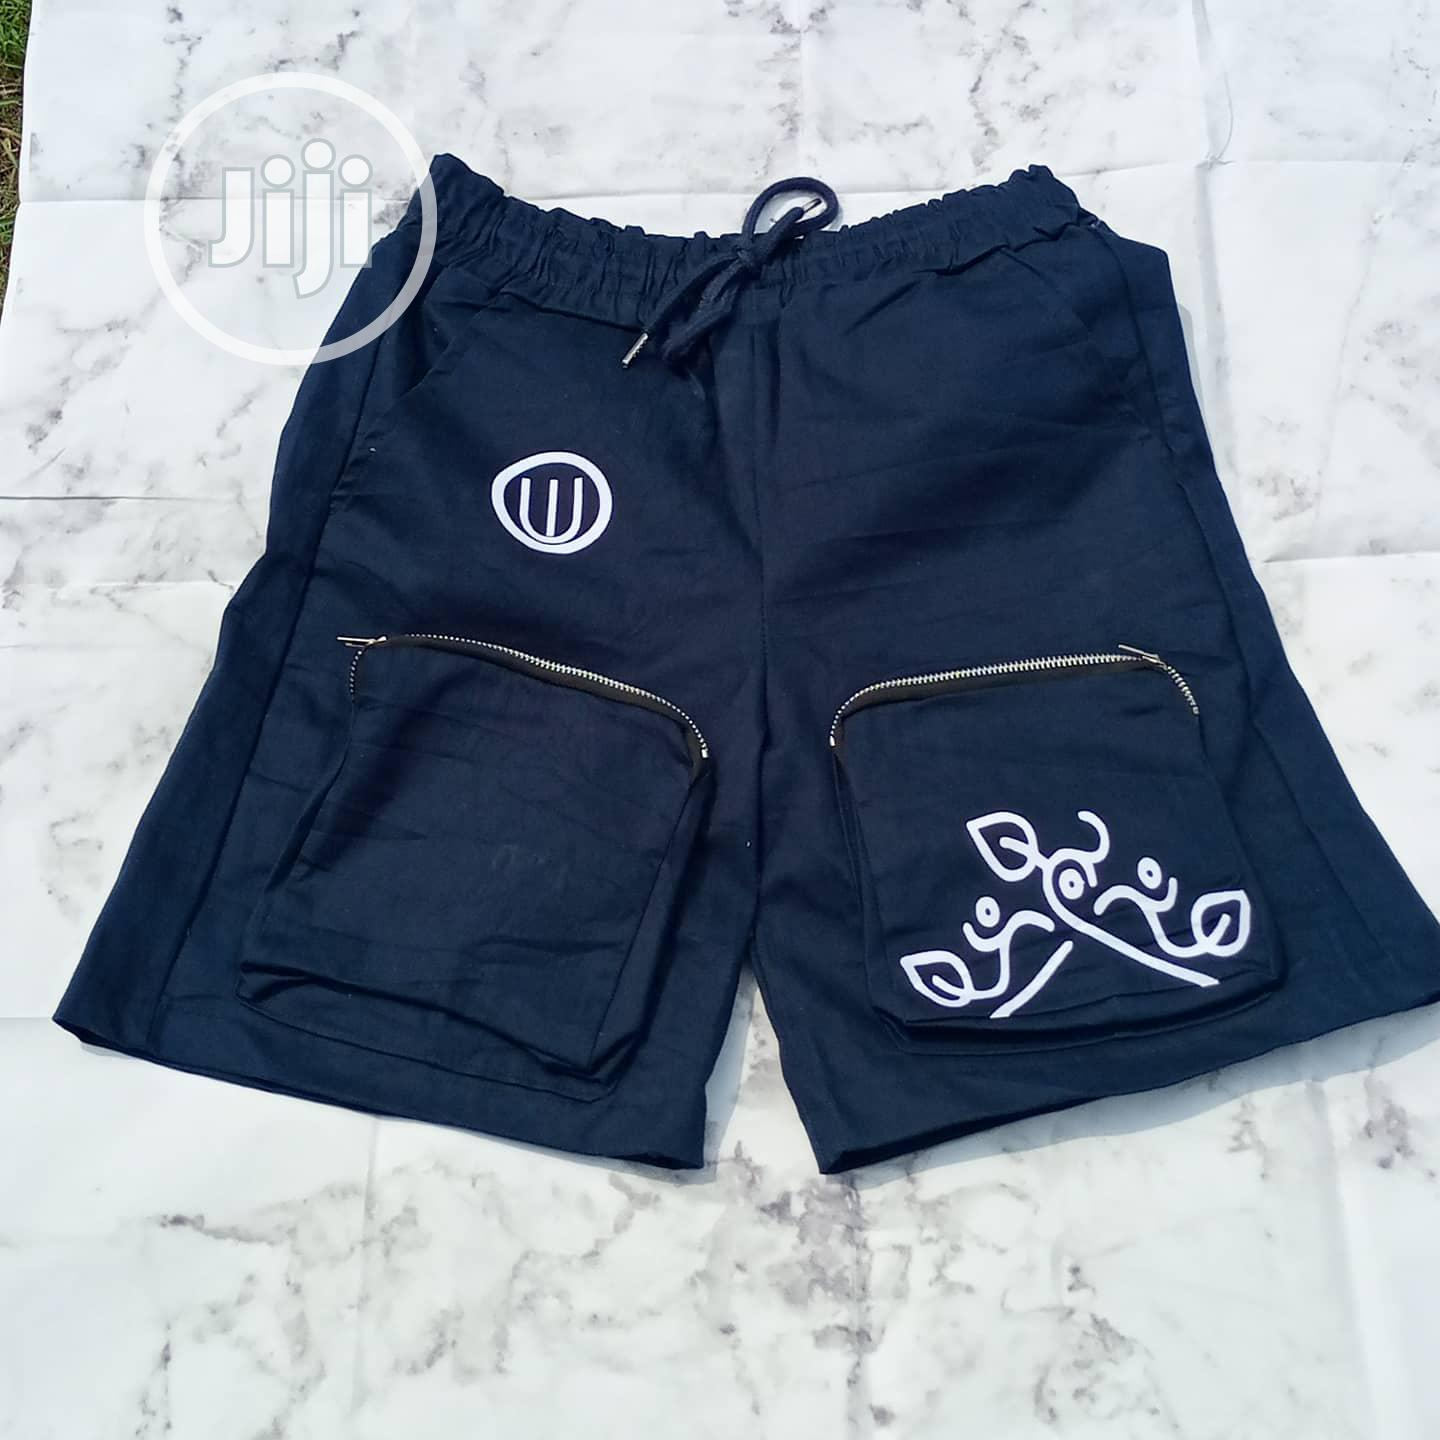 Oui Couture Shorts   Clothing for sale in Oshimili South, Delta State, Nigeria